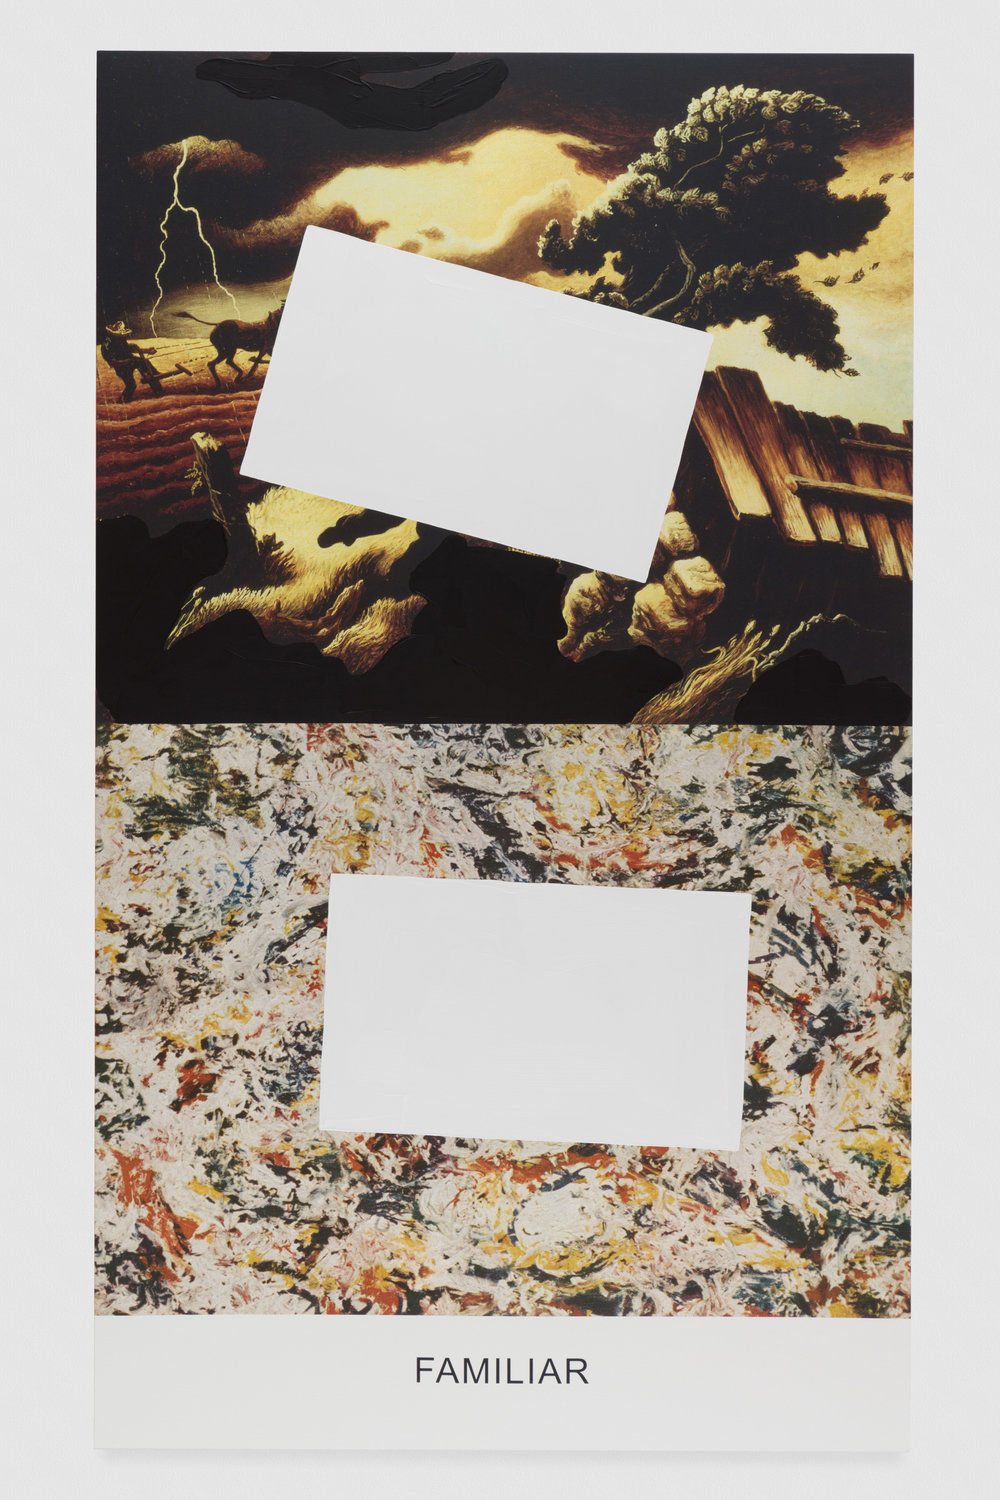 Pollock/Benton: Familiar, 2016. Photo credit: Joshua White, all images are courtesy of John Baldessari and the Marian Goodman Gallery